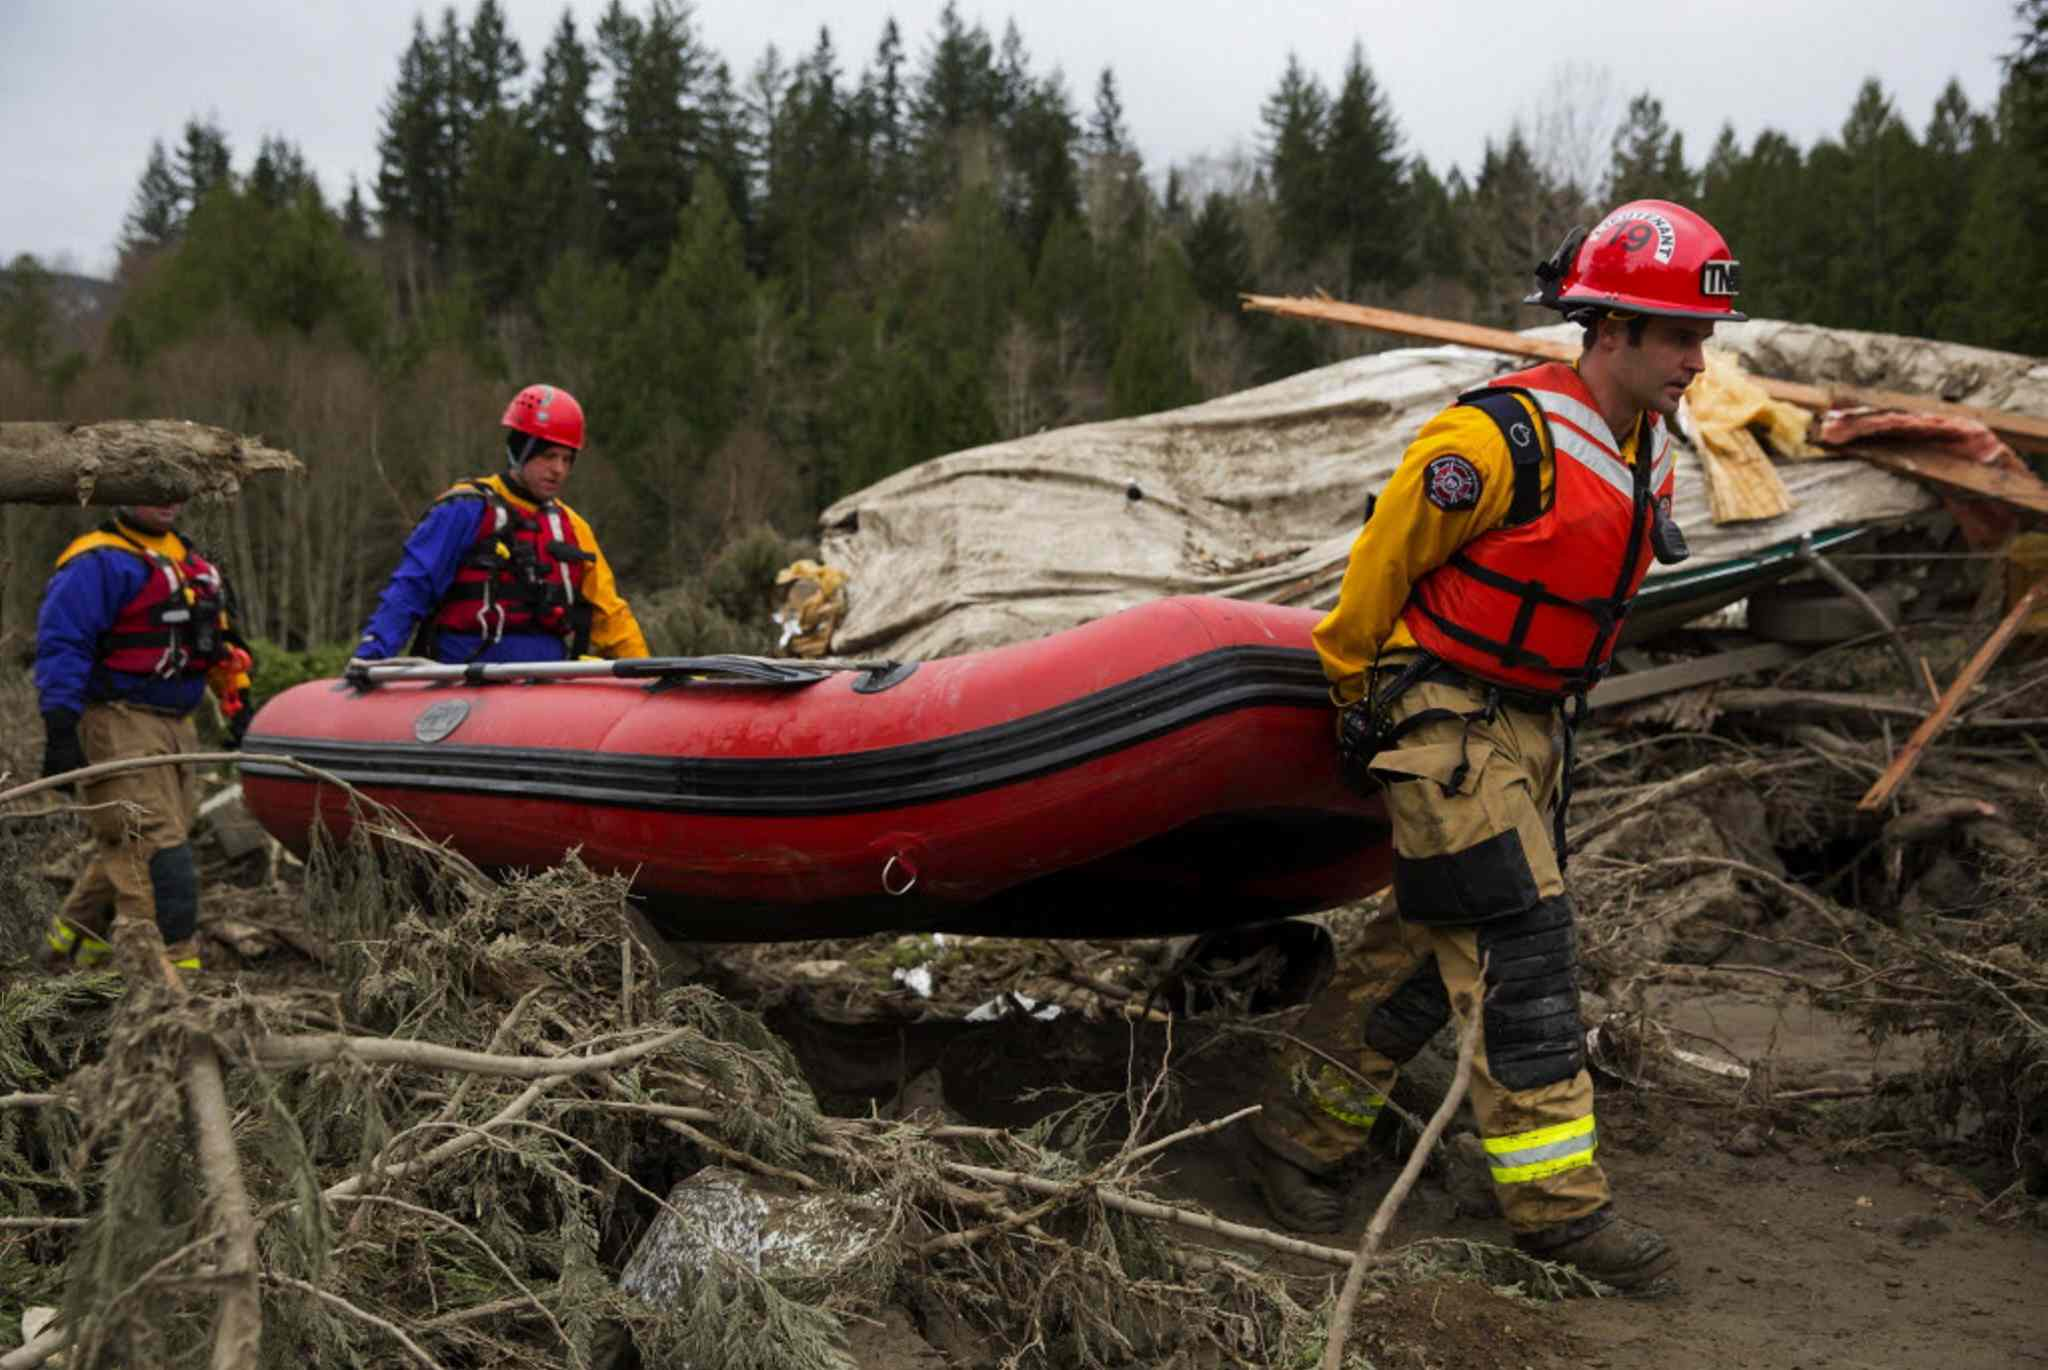 Rescue workers carry an inflatable boat to the flooded area in the debris field caused by the massive mudslide above the North Fork of the Stillaguamish River onto Highway 530, as recovery efforts are underway.